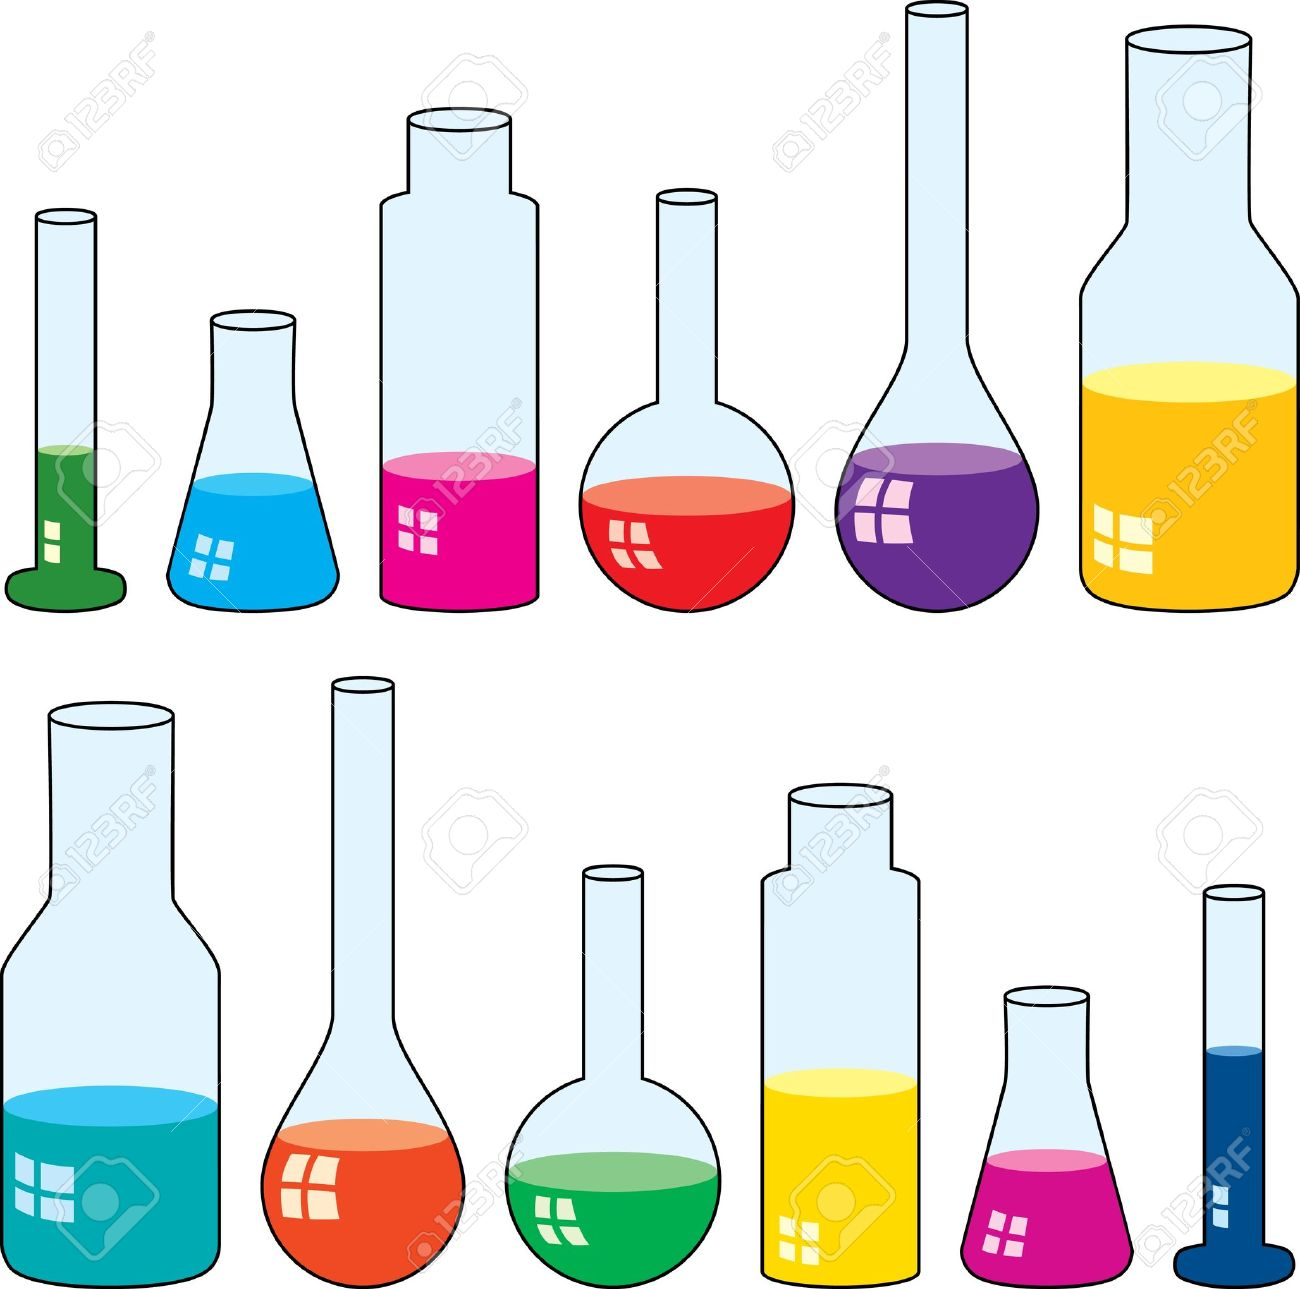 Scientist clipart laboratory apparatus #11